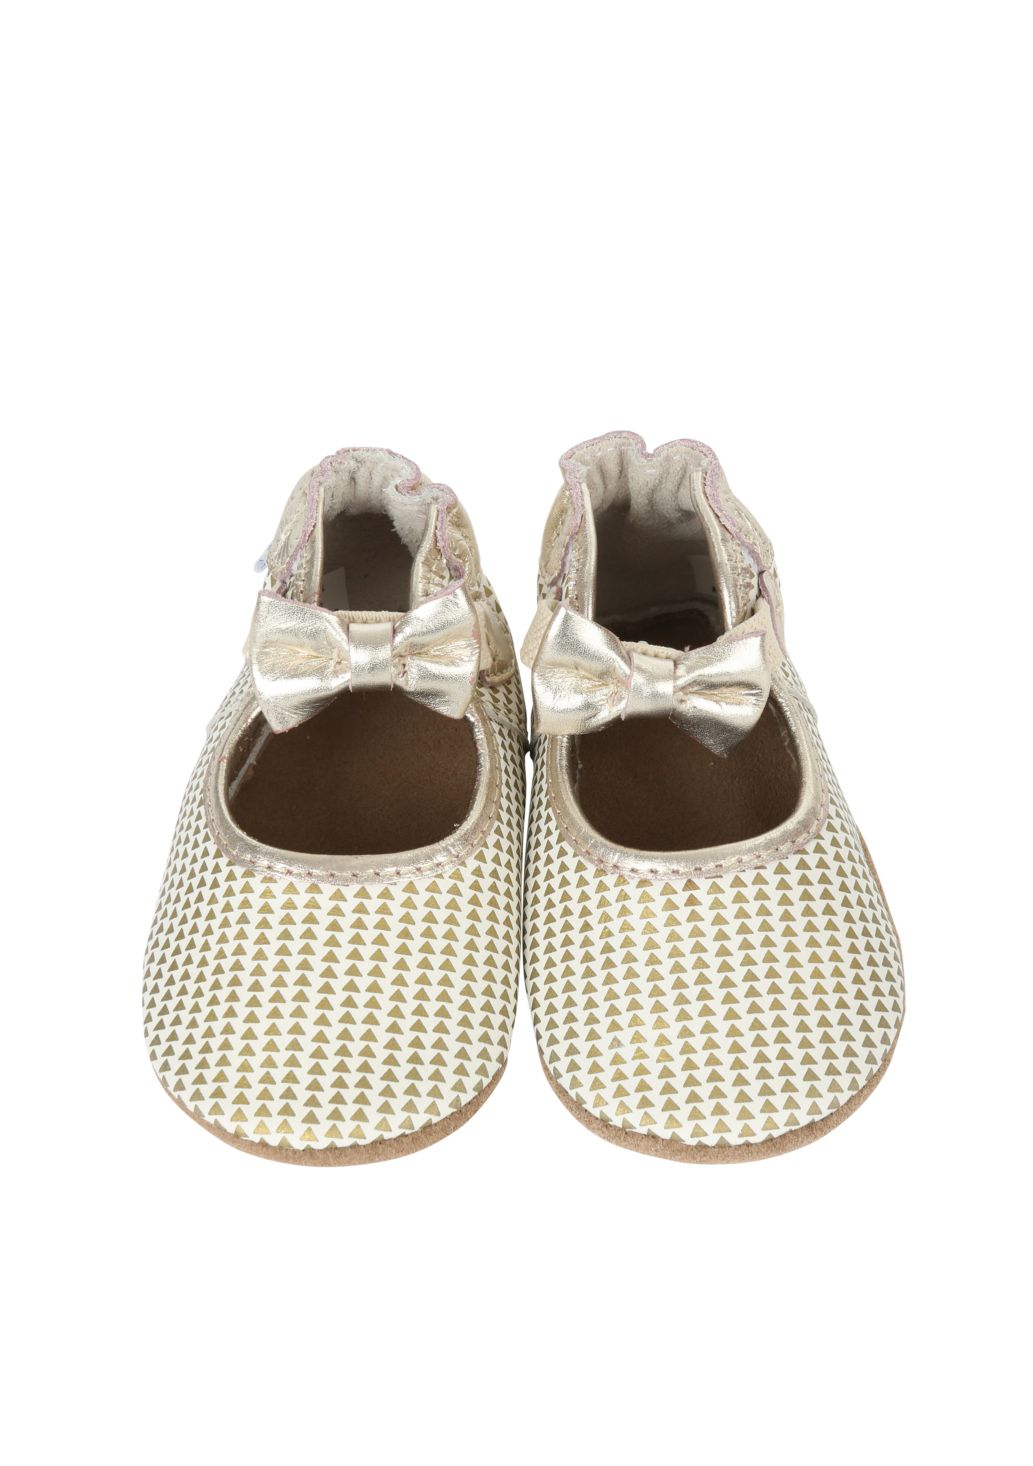 robeez-soft-sole-baby-shoes-mary-jane-gold-triangles.jpeg